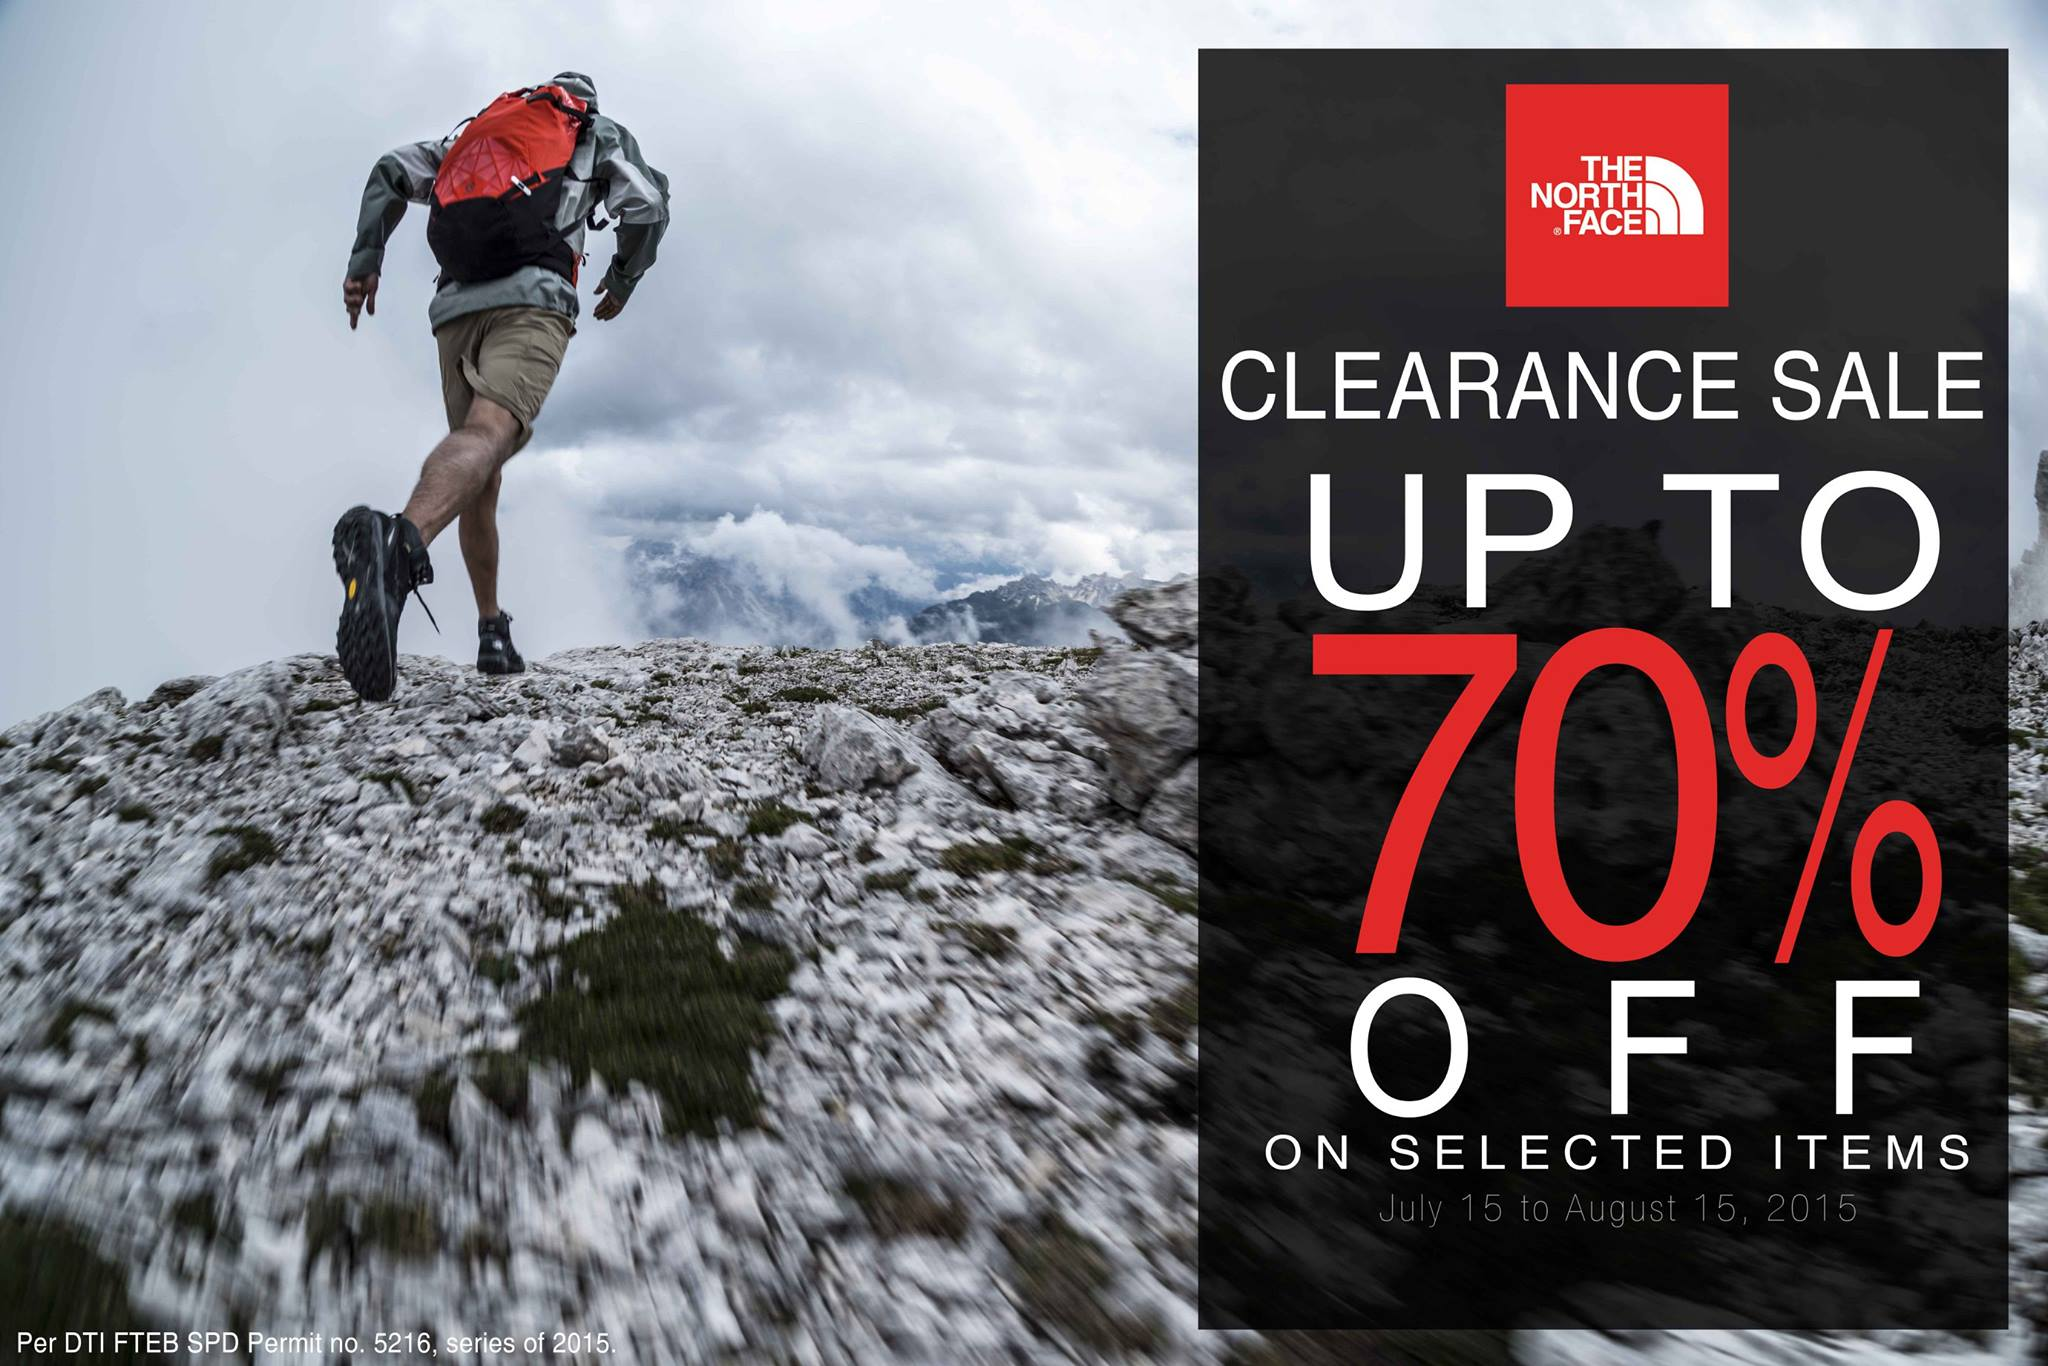 da63dad19 The North Face Clearance Sale July - August 2015 | Manila On Sale